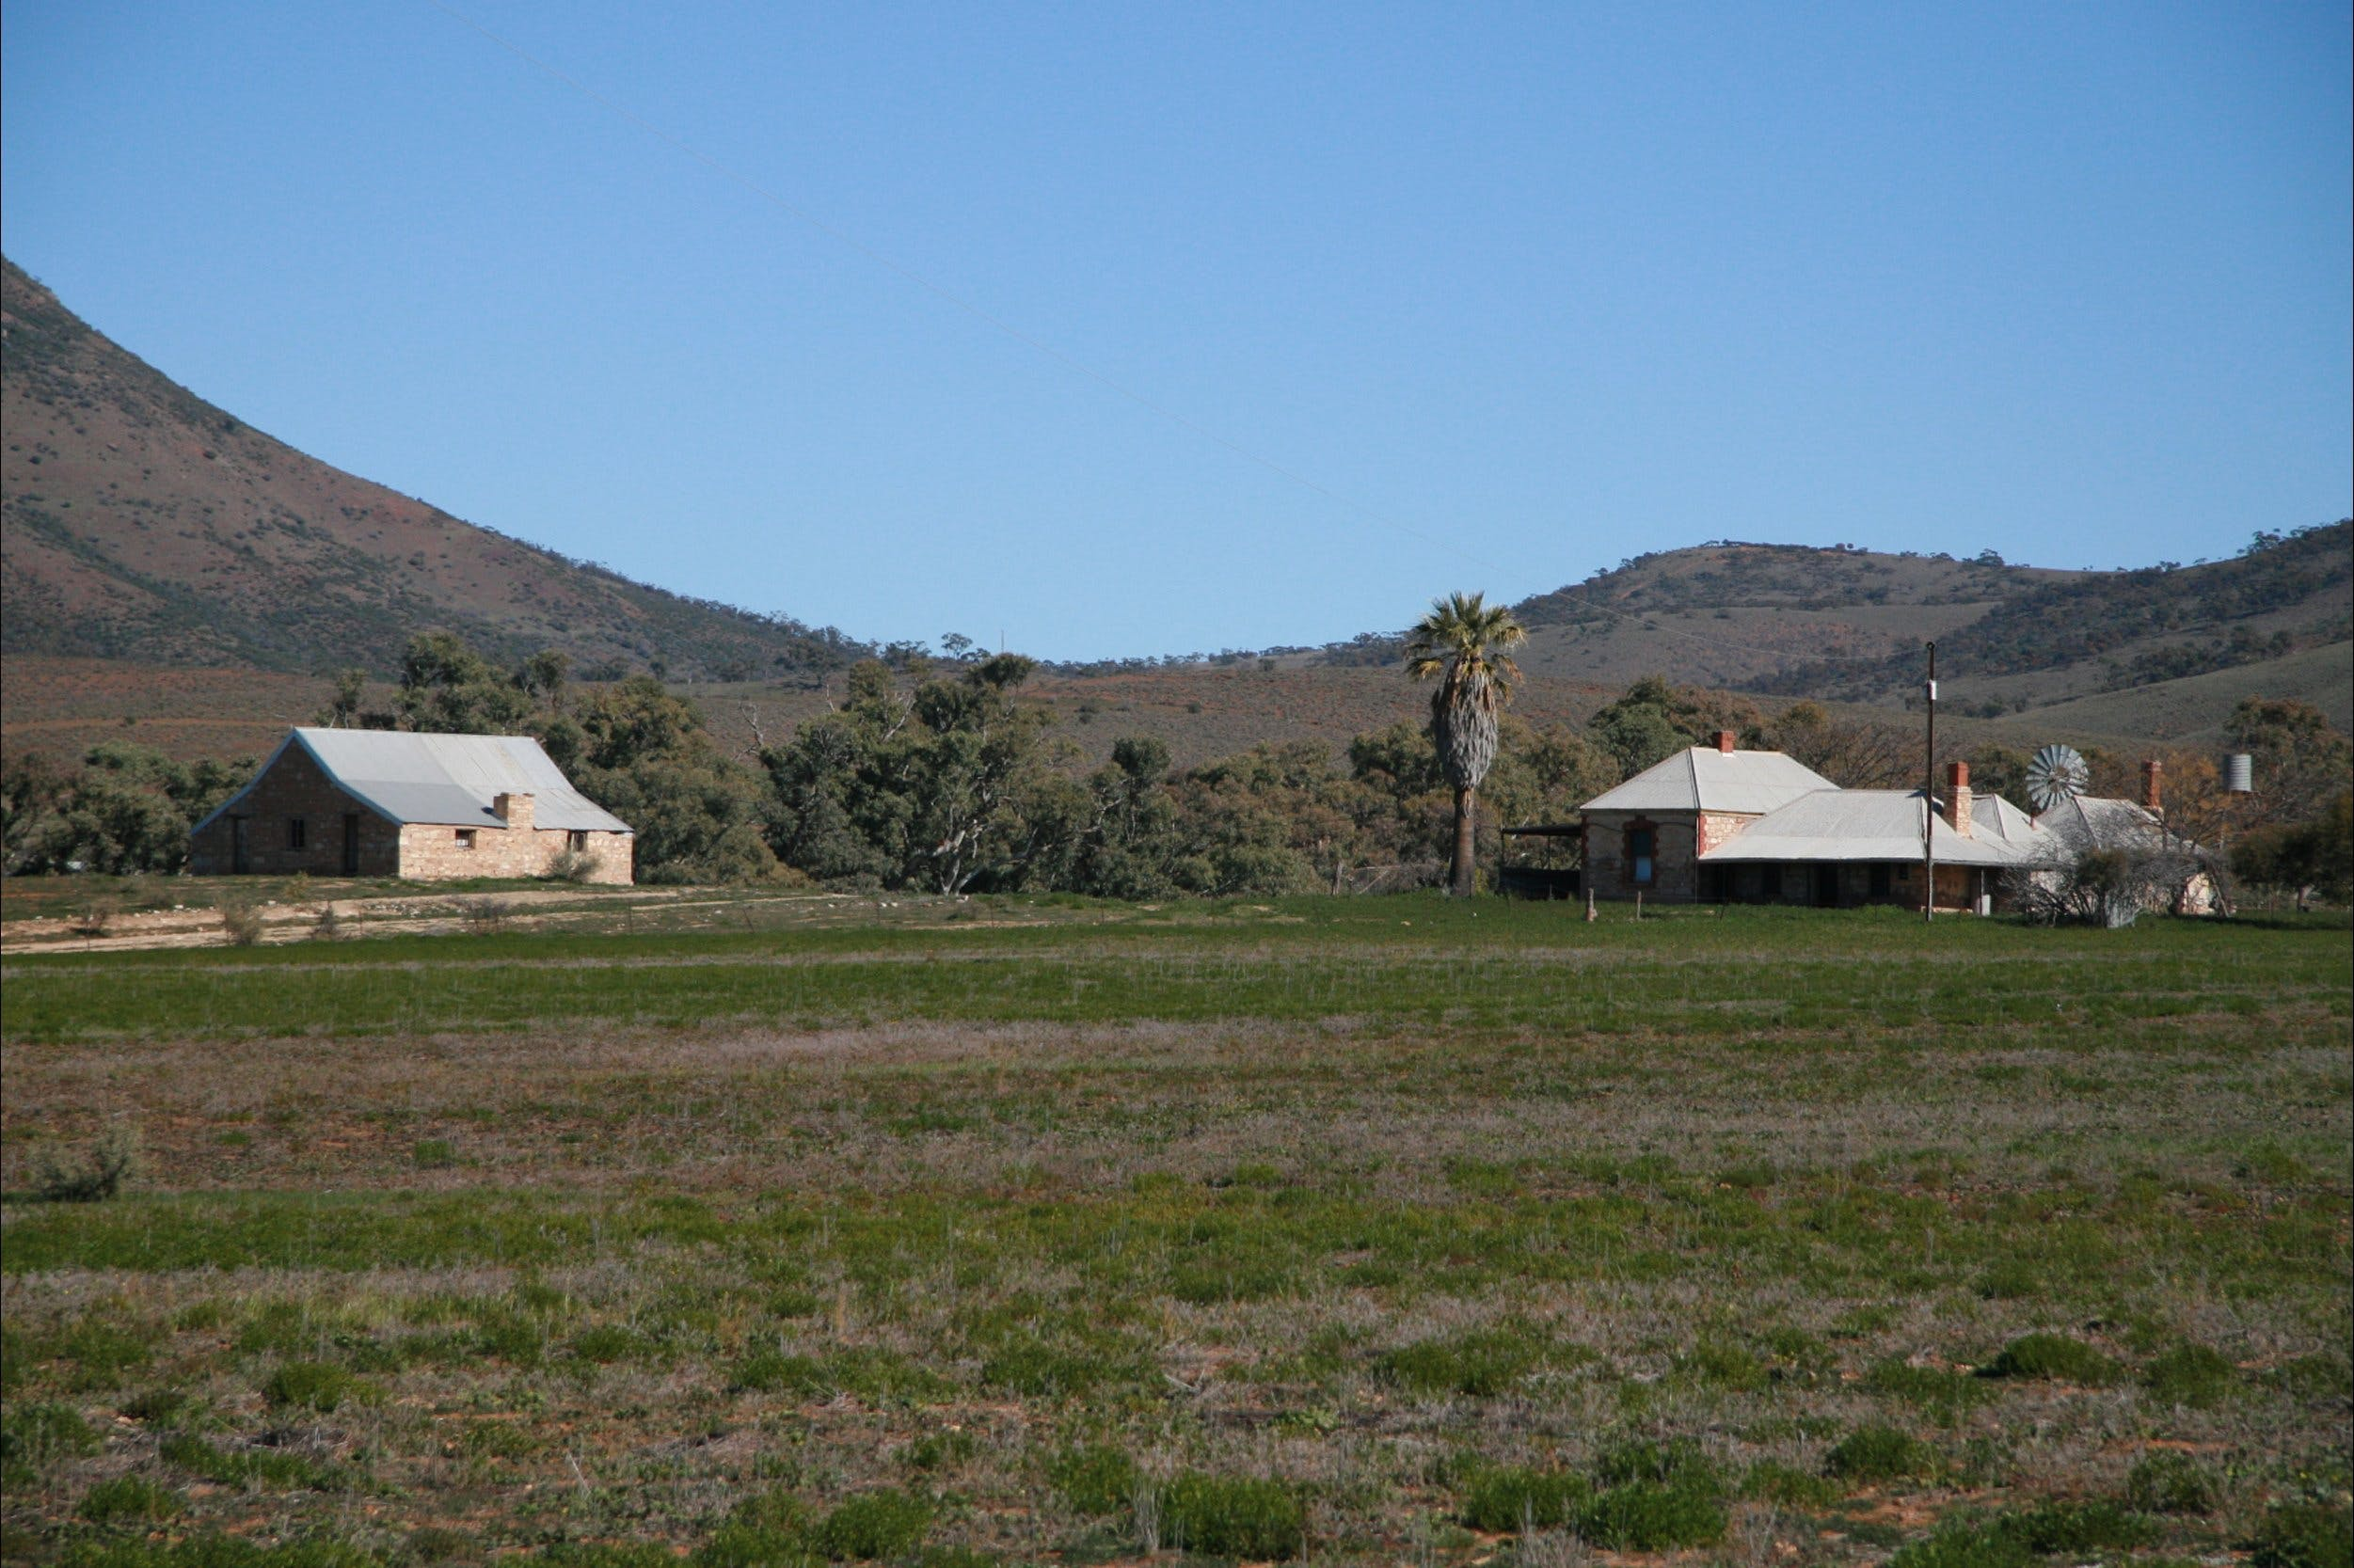 The Dutchman's Stern Homestead - Accommodation Broken Hill